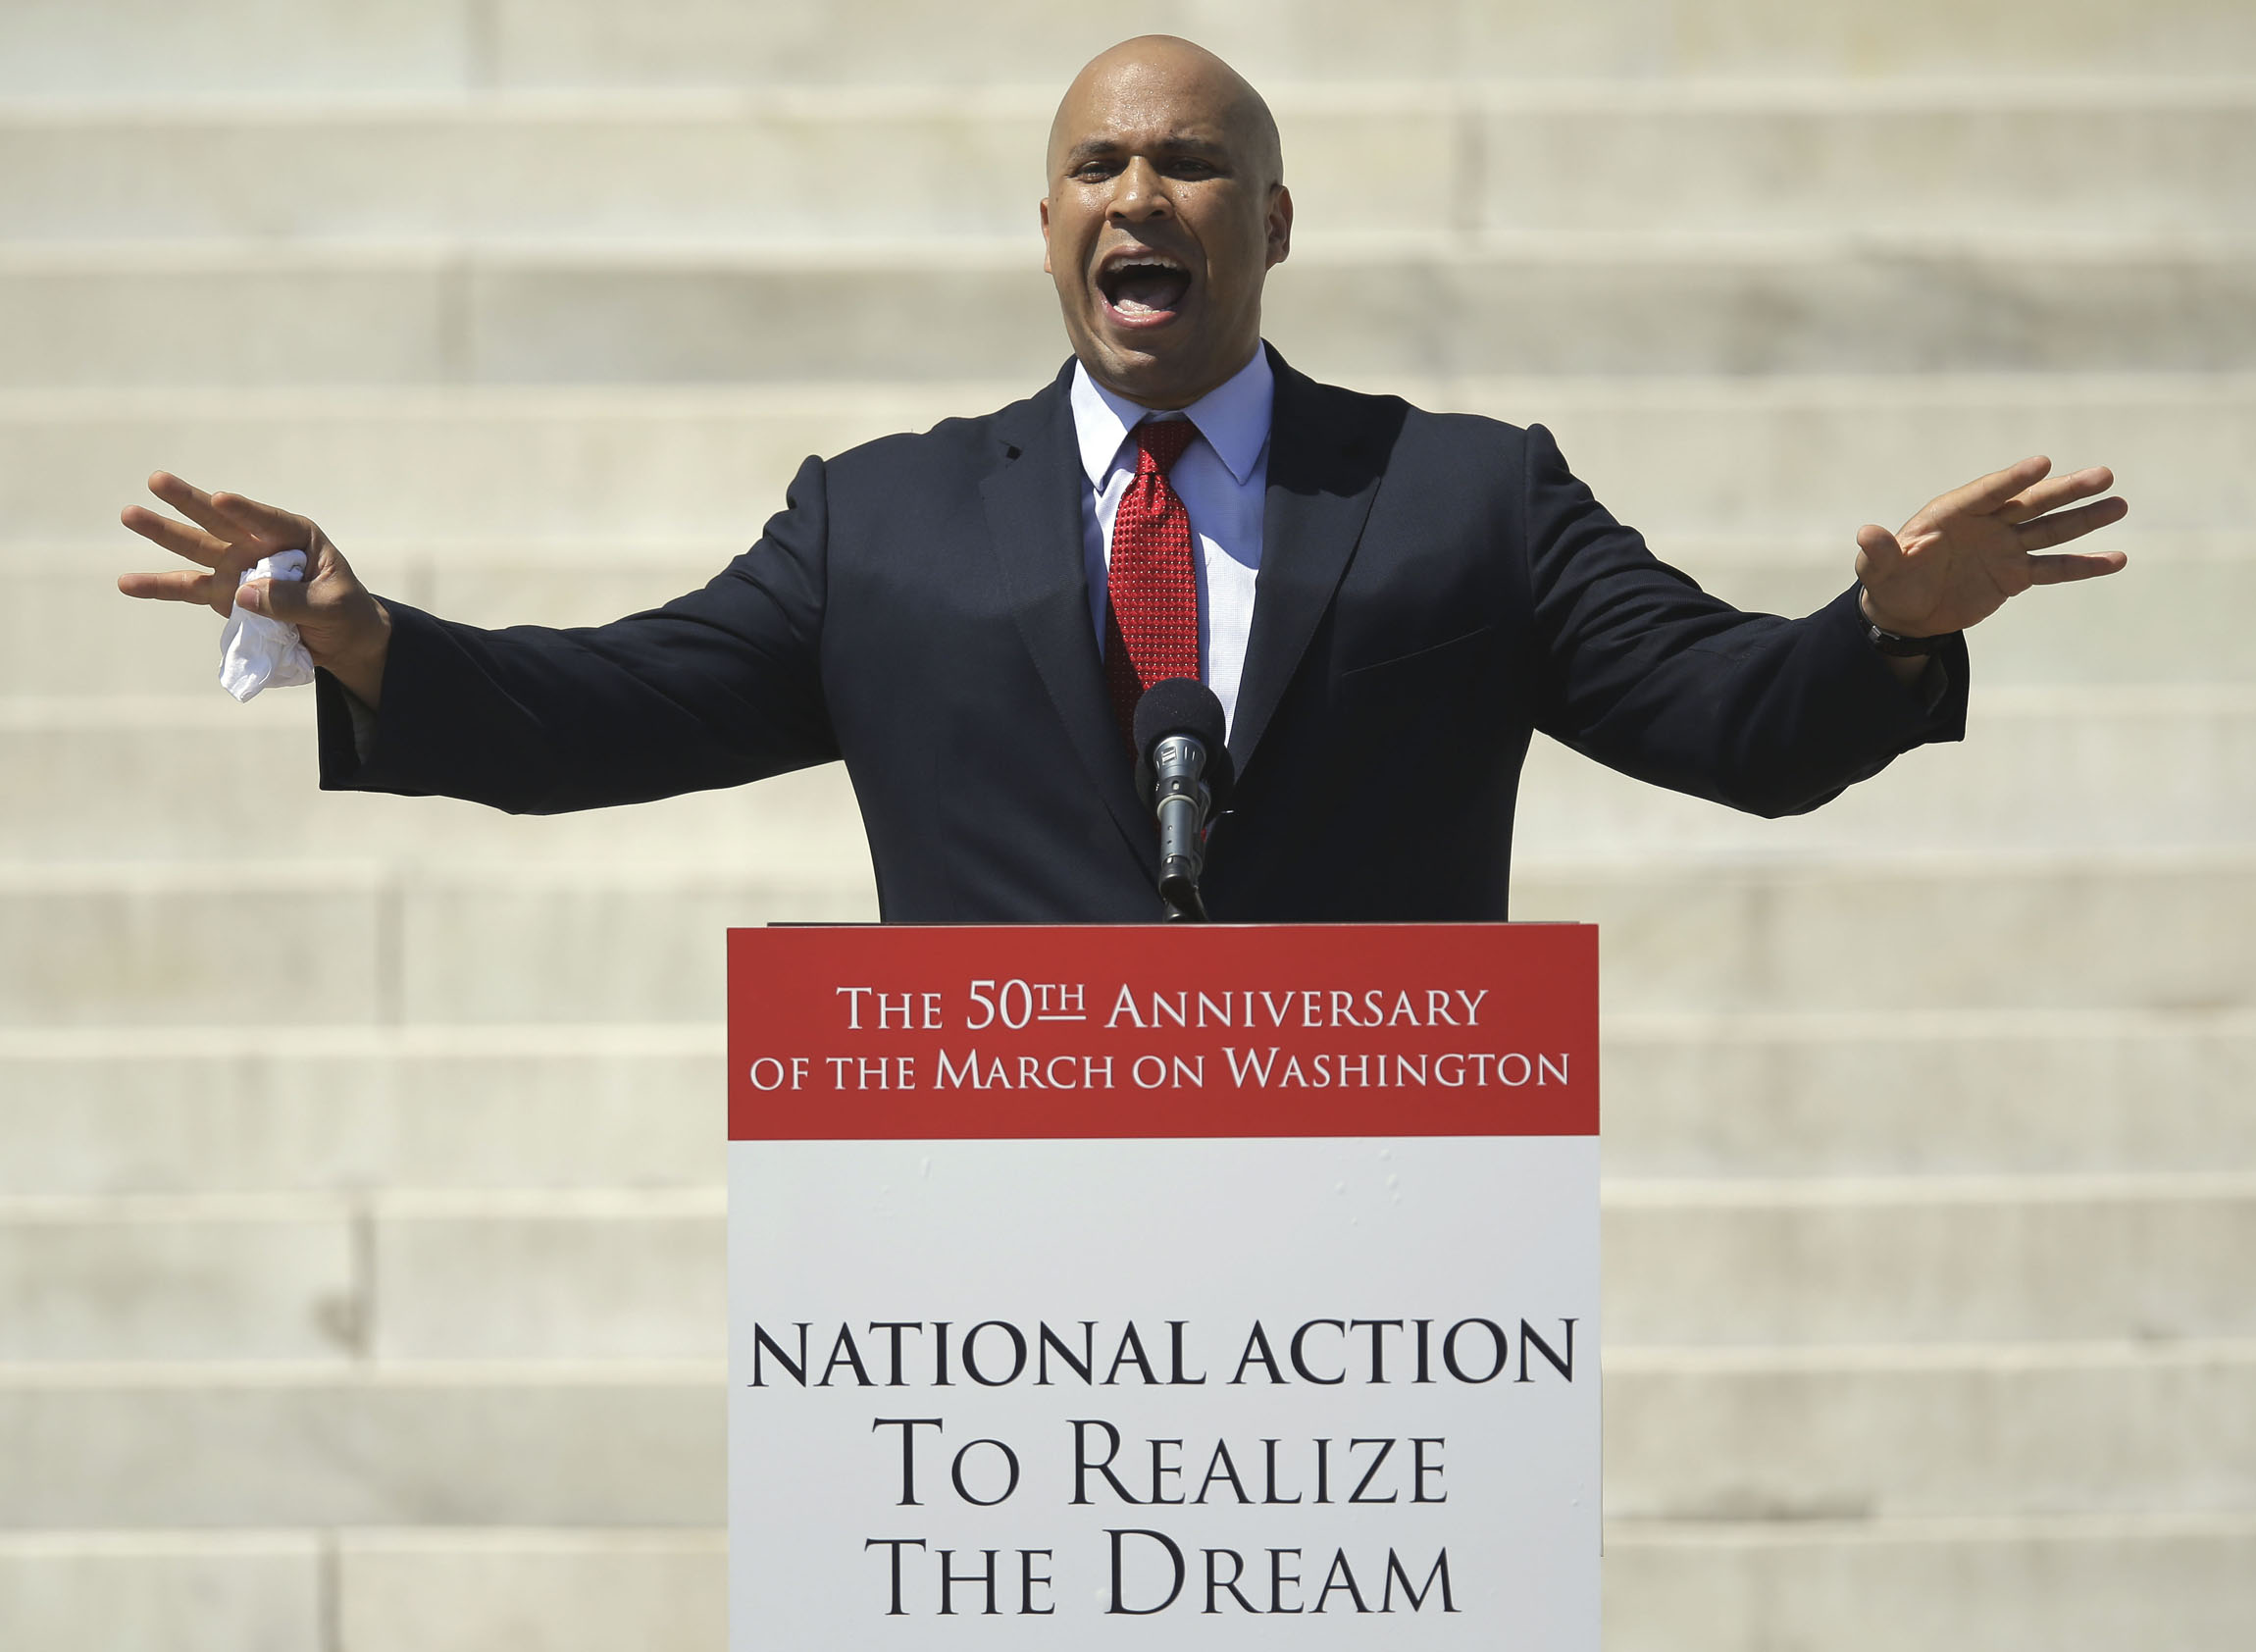 Greater things await: Newark Mayor Cory Booker, a rising Democratic star who is running for the U.S. Senate, speaks at an Aug. 24 rally from the steps of the Lincoln Memorial to commemorate the 50th anniversary of the 1963 March on Washington. | AP